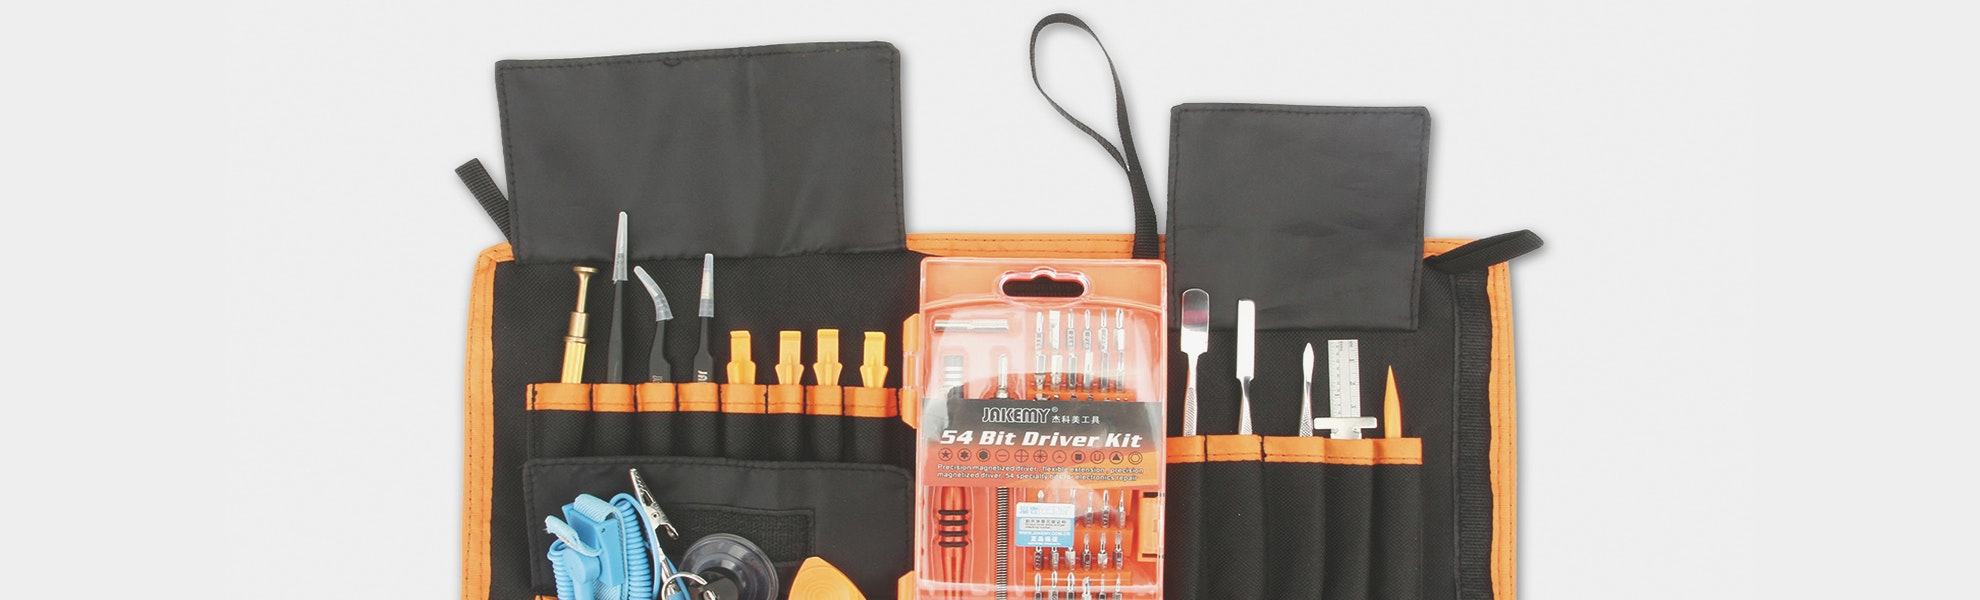 Jakemy 74-in-1 Pro Tech Precision Repair Tool Kit